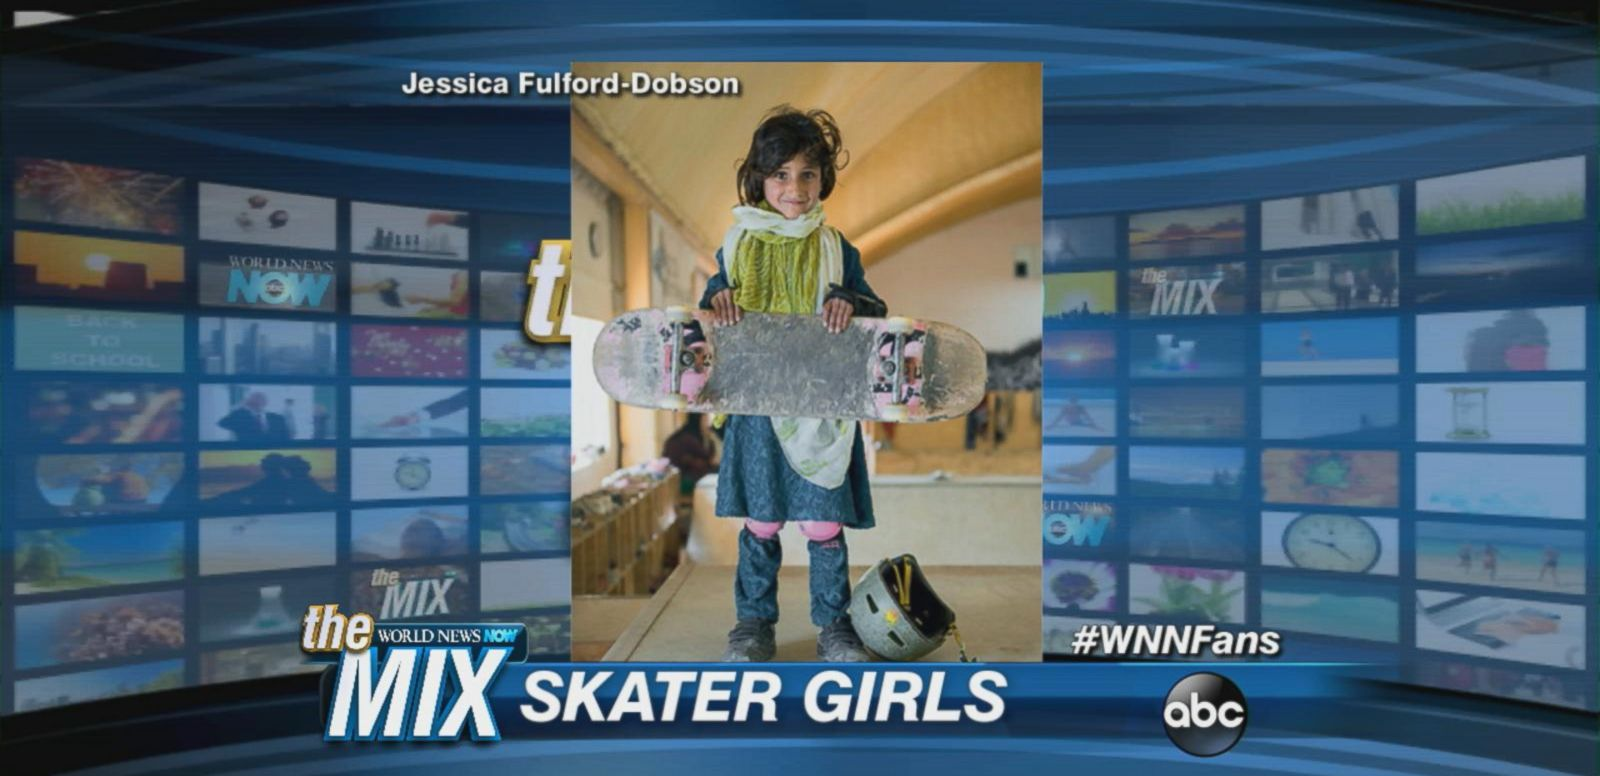 VIDEO: Photographer creates photo series featuring young Afghan girls learning to skateboard.